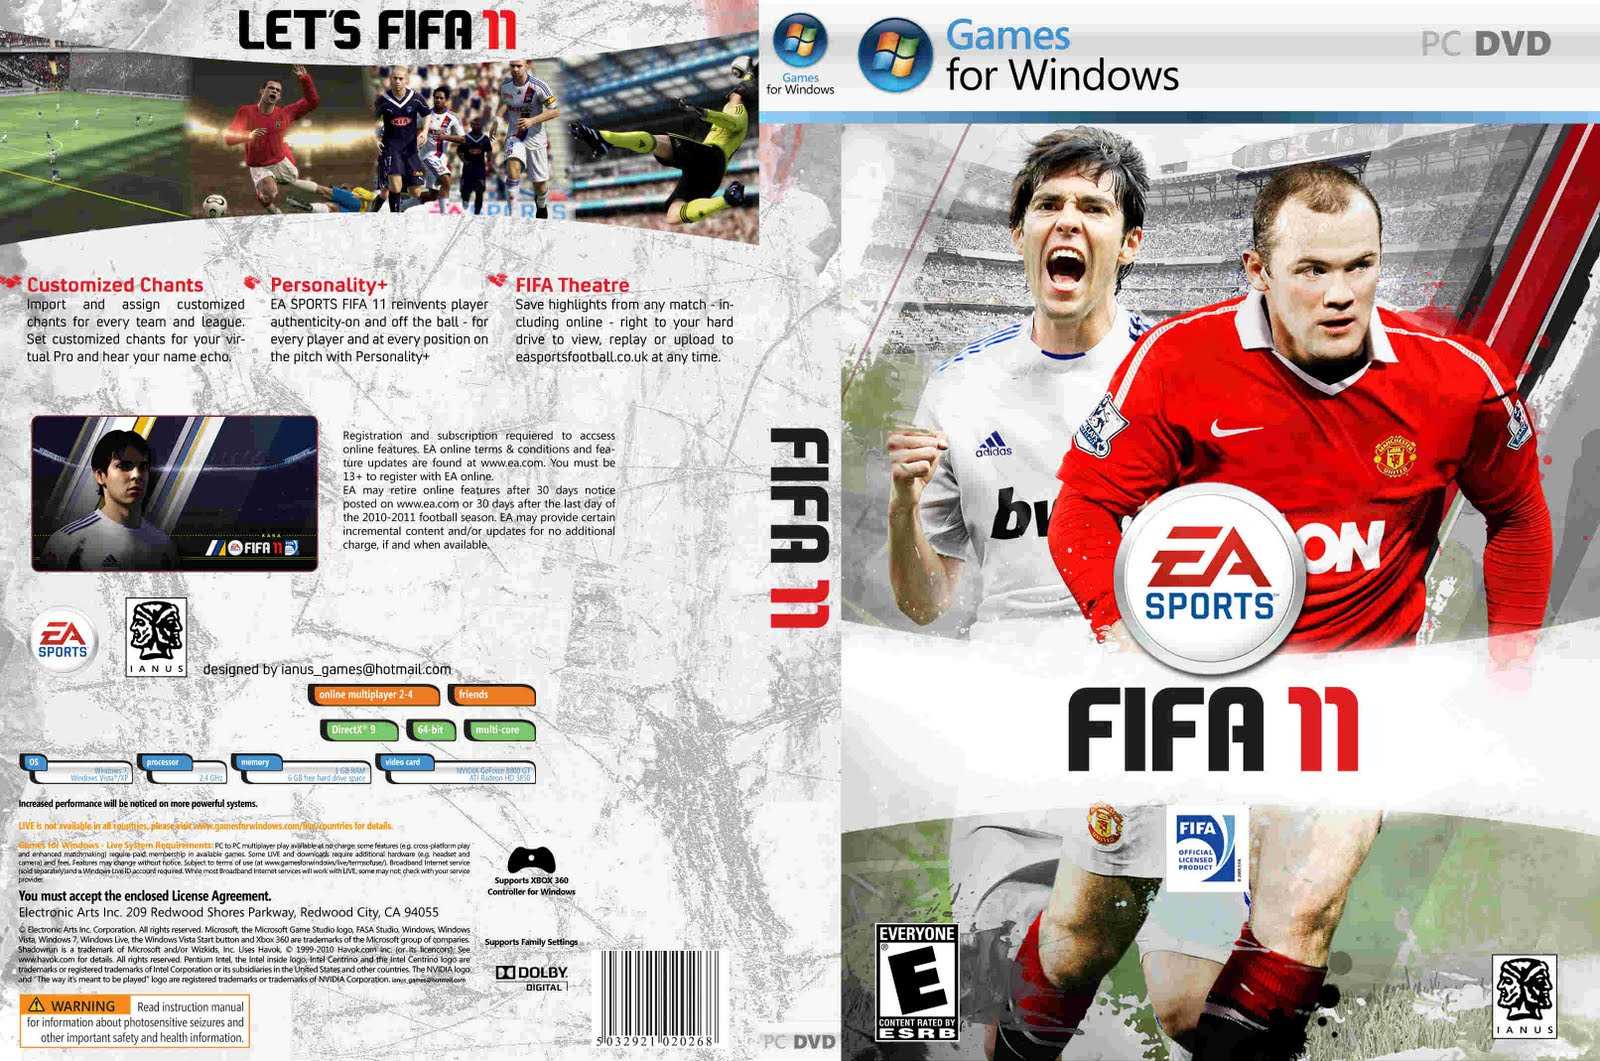 fifa 12 by ea sports android game